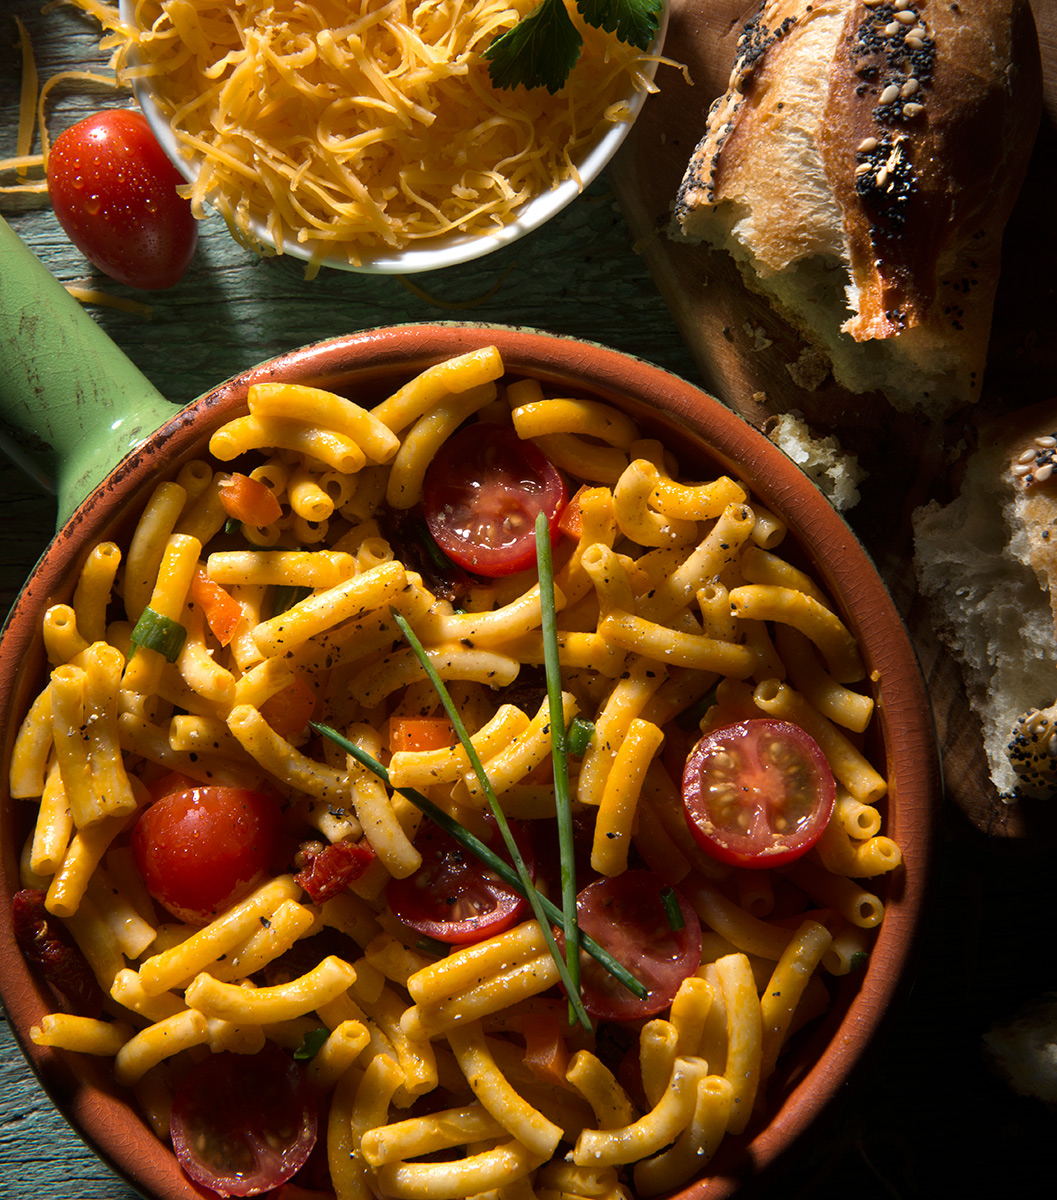 Mac n' Cheese-Carl Kravats Food Photography